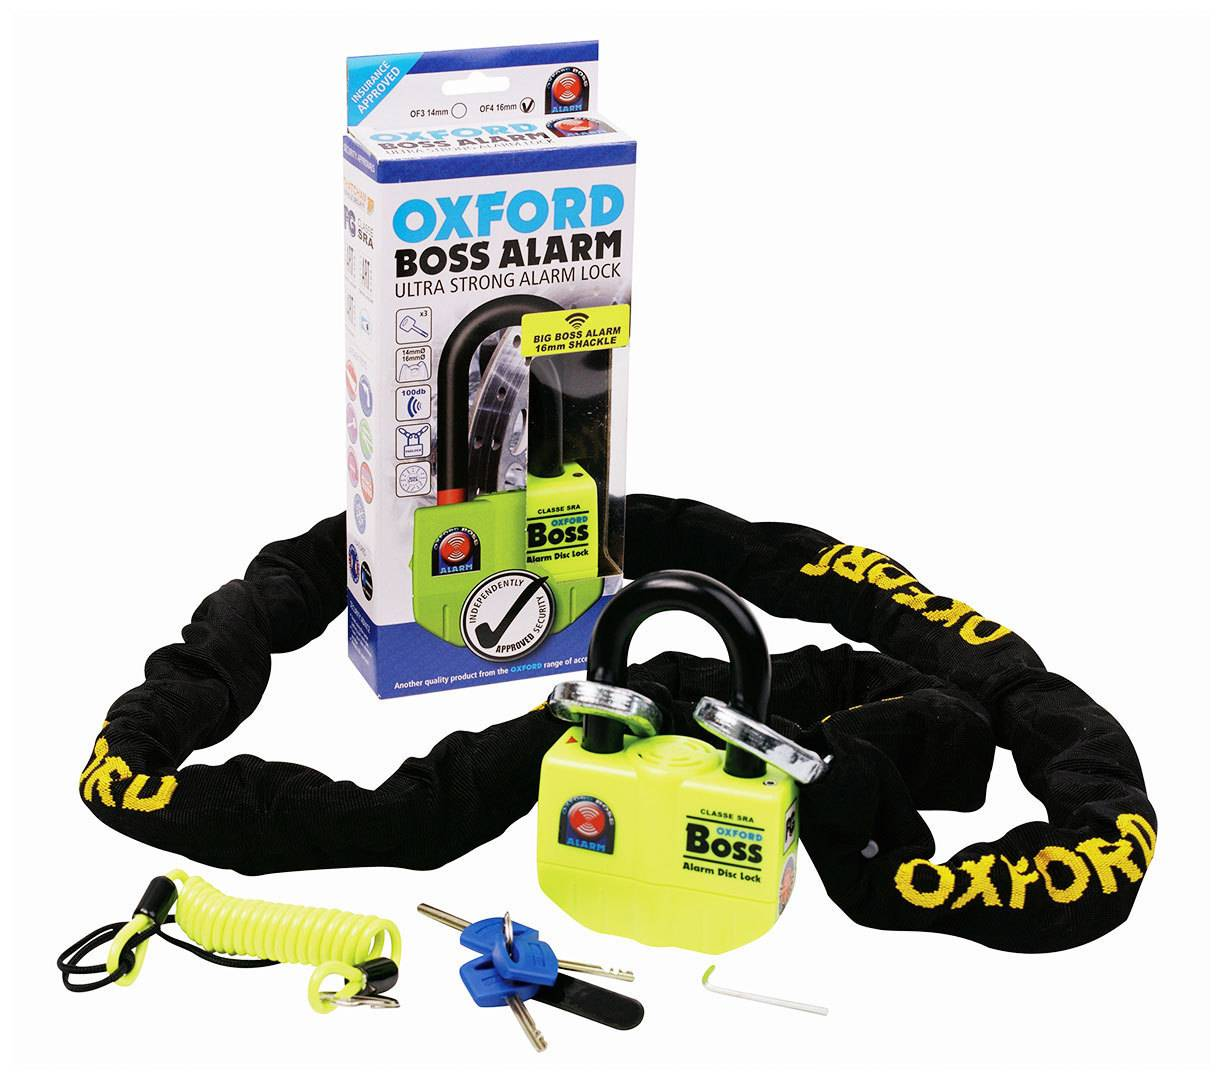 Oxford Boss Chain and Alarm Padlock Negro 150 cm